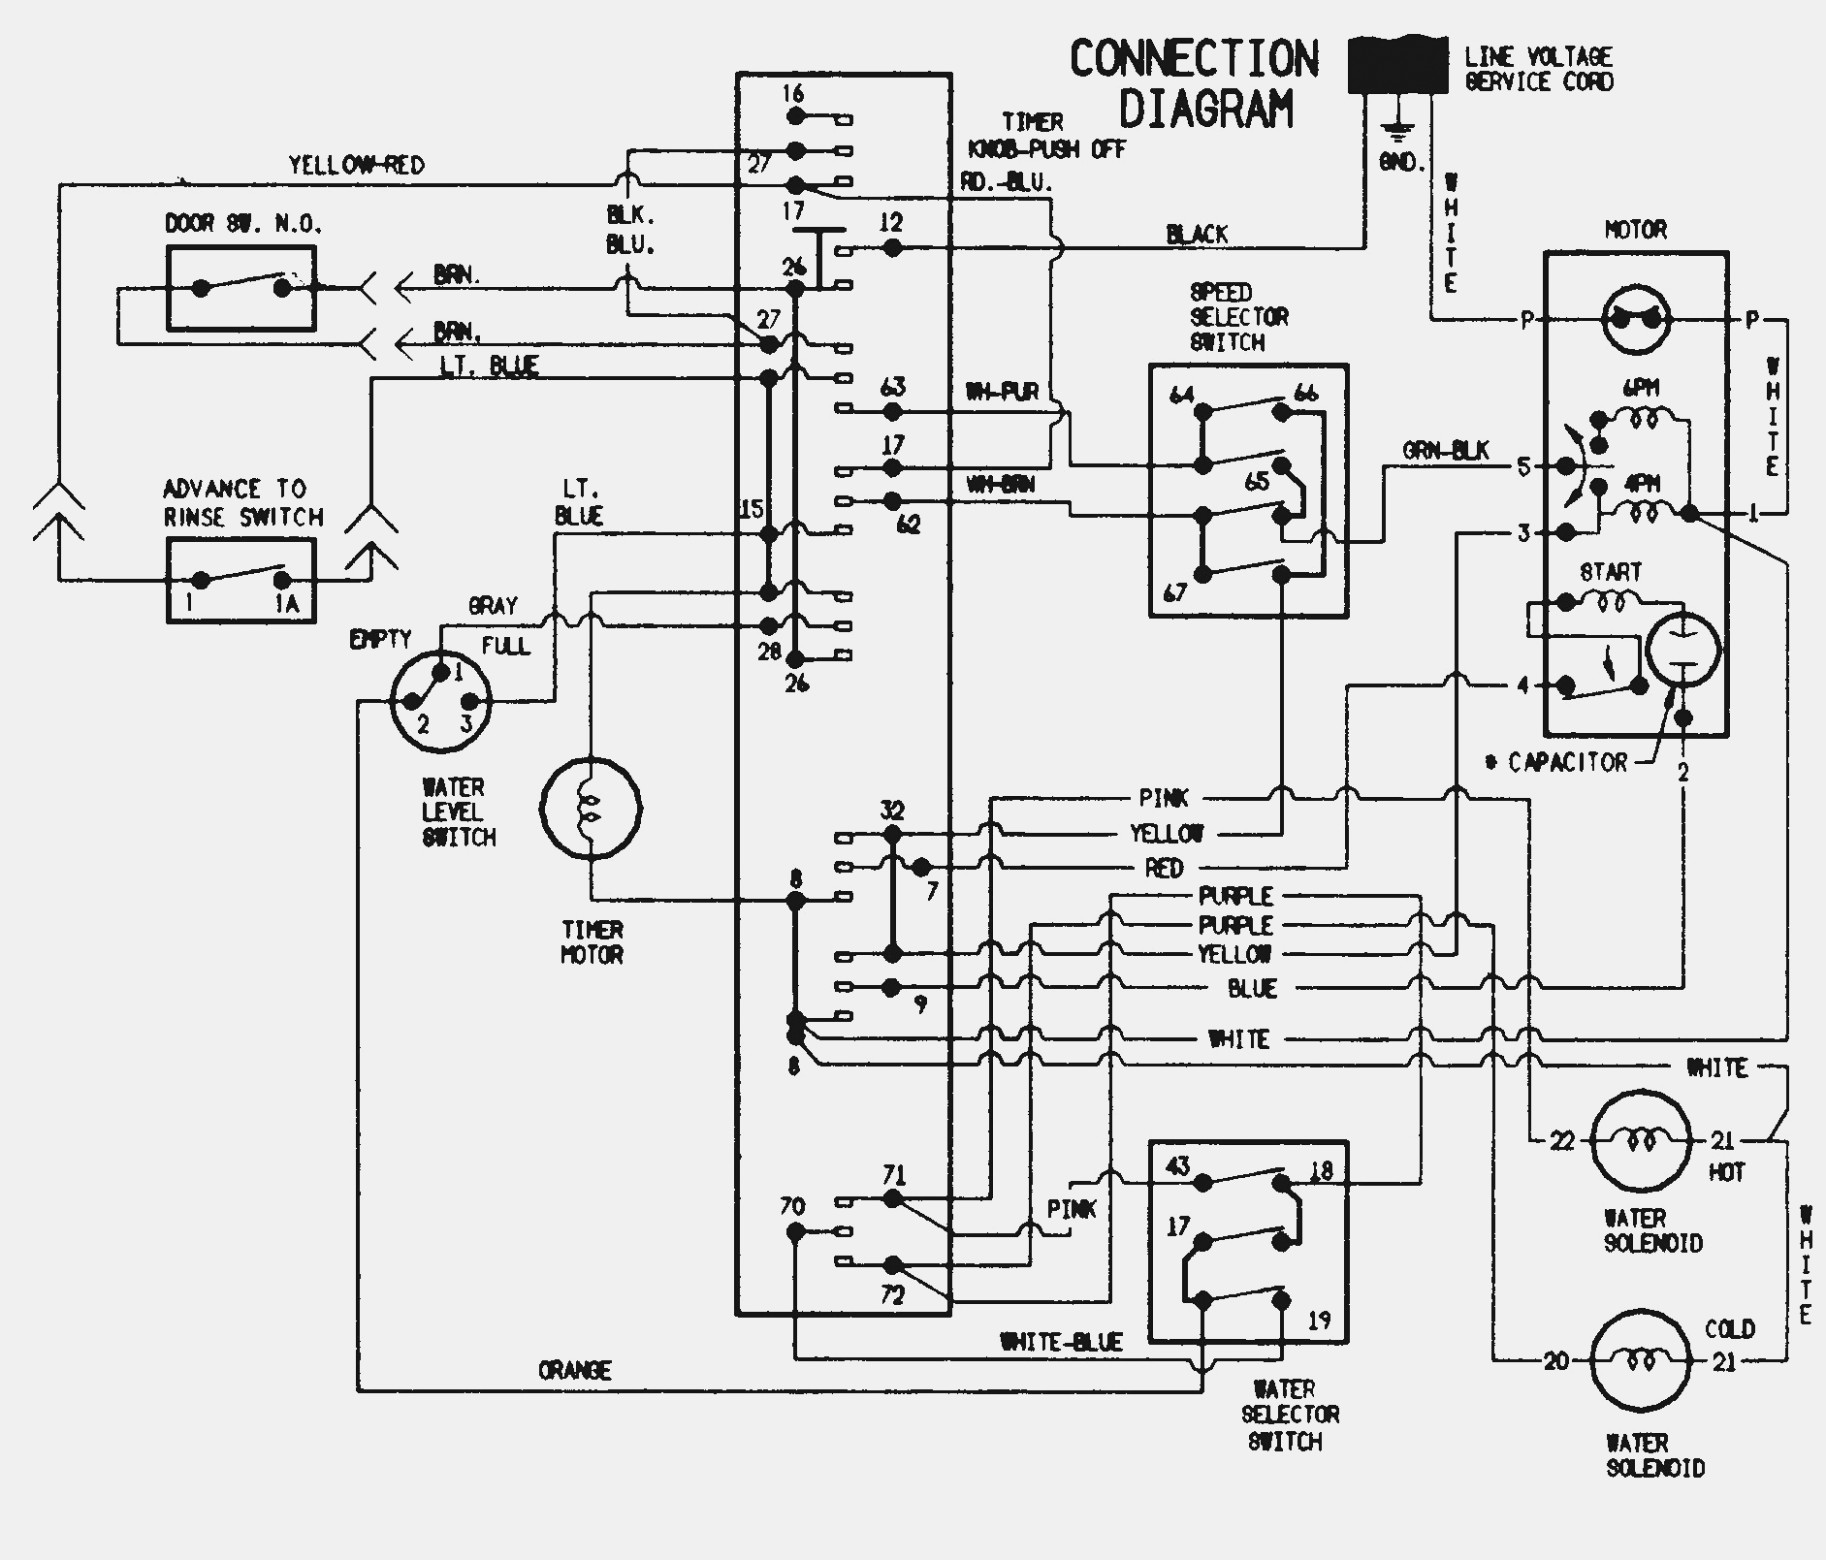 Gn250 Wire Diagram. suzuki gn250 1996 t electrical